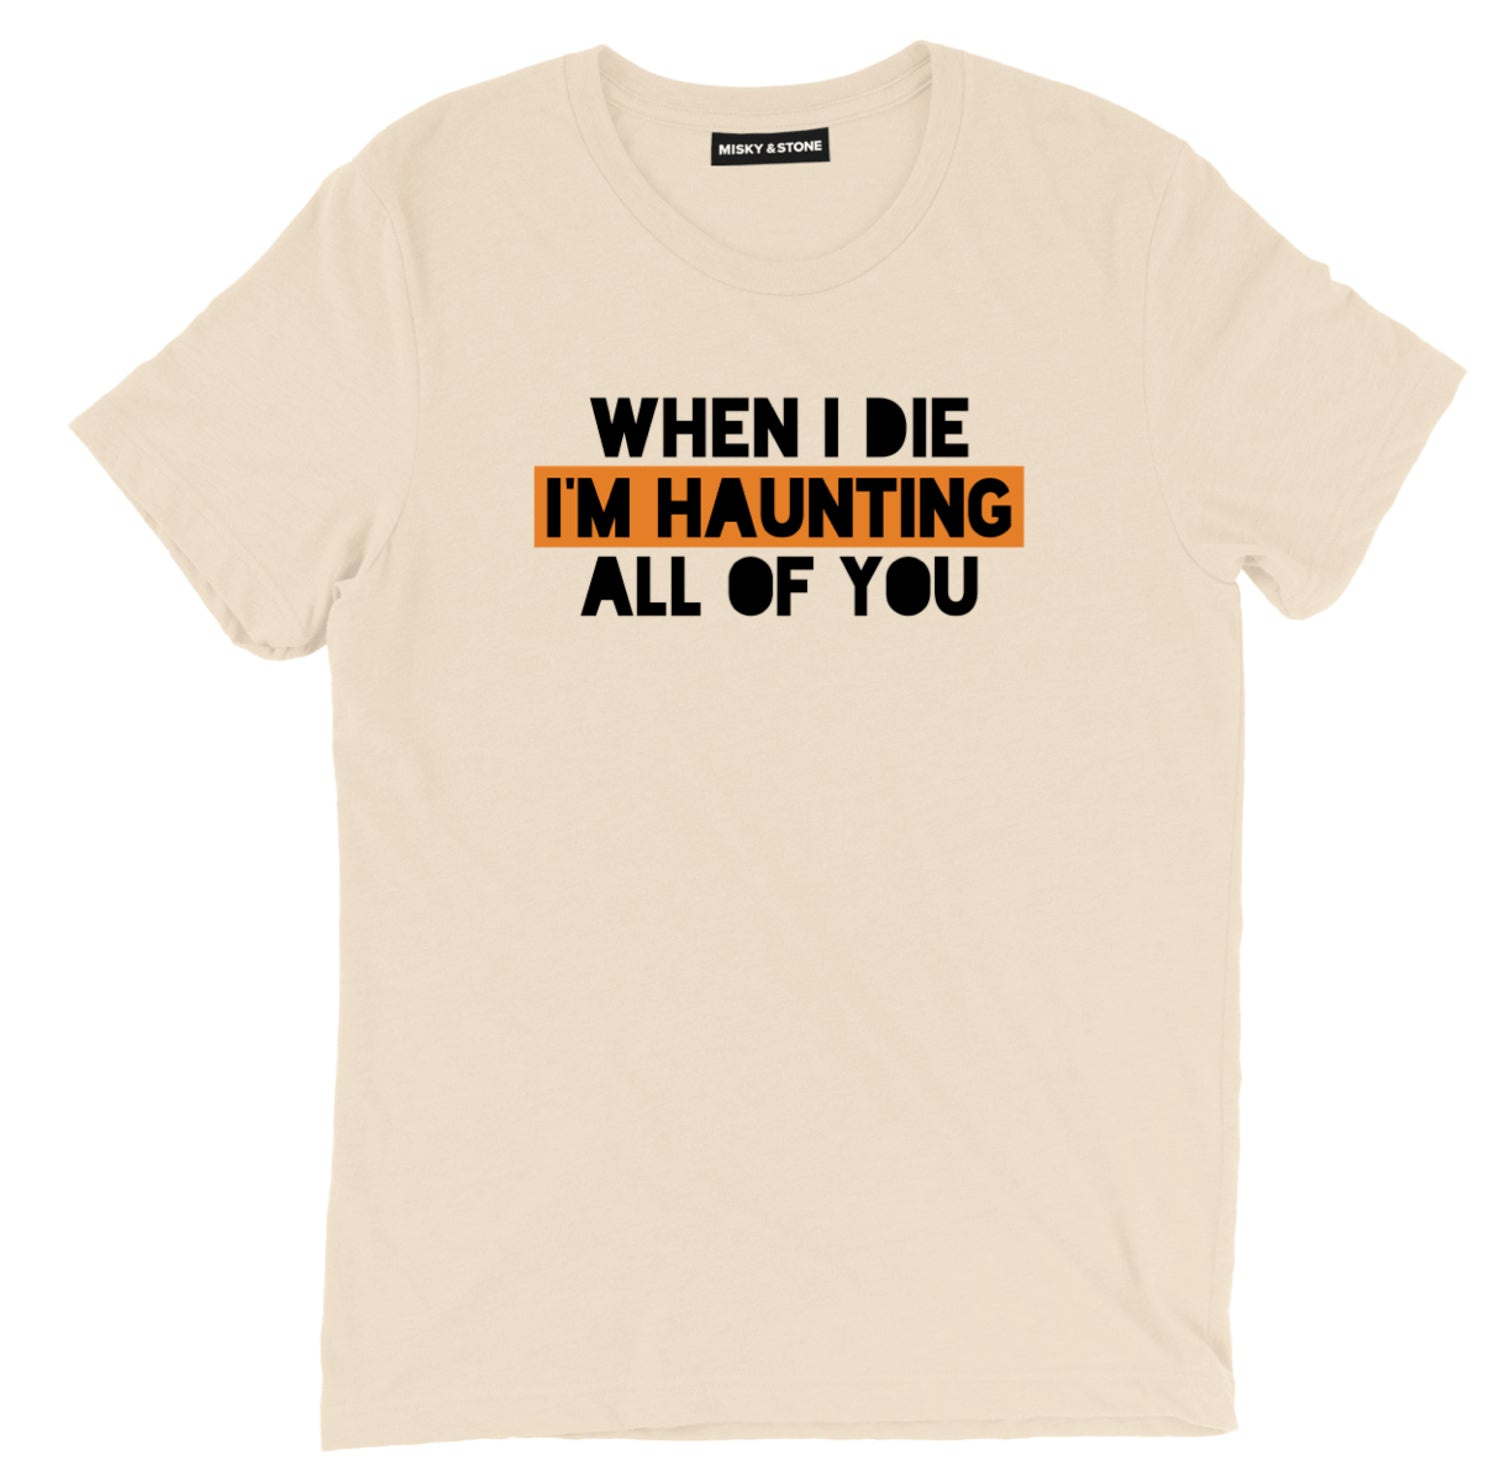 when i die im haunting all of you tee, hauntinghalloween shirts, halloween t shirts, halloween tee shirts, halloween tees, funny halloween shirts, cute halloween shirts, funny halloween t shirts,